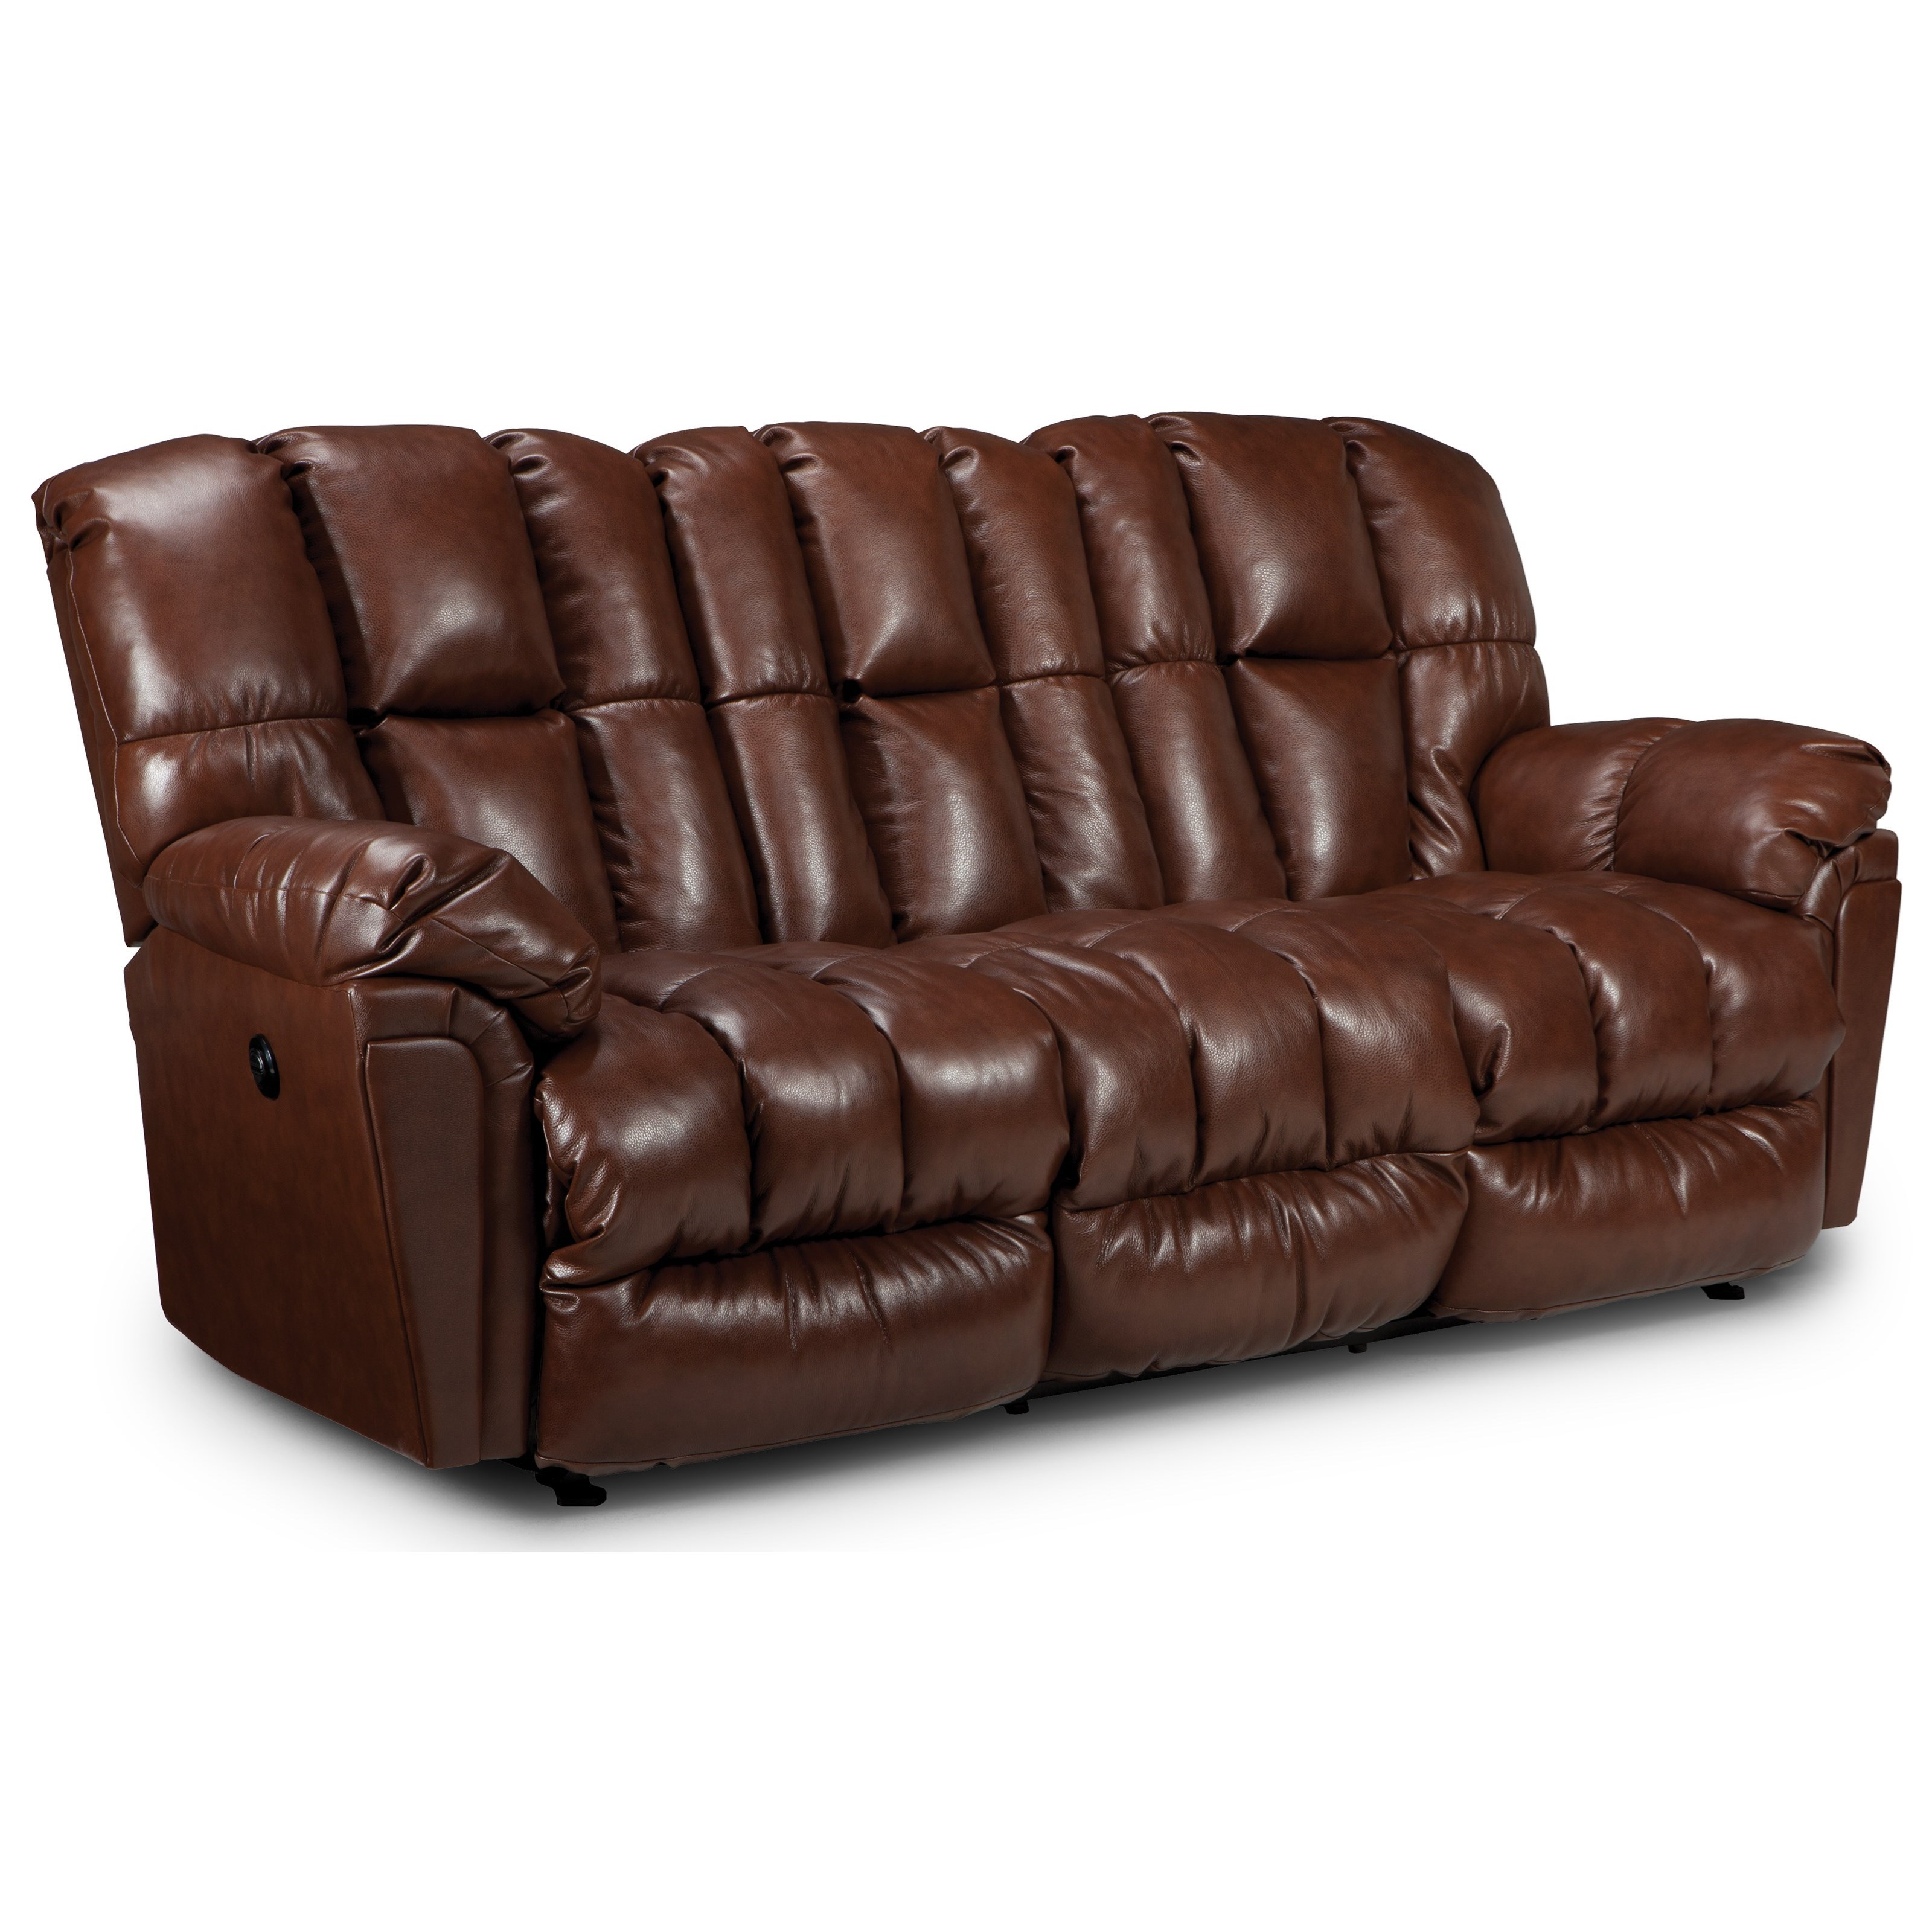 Best Home Furnishings Lucas Casual Plush Reclining Sofa with Full